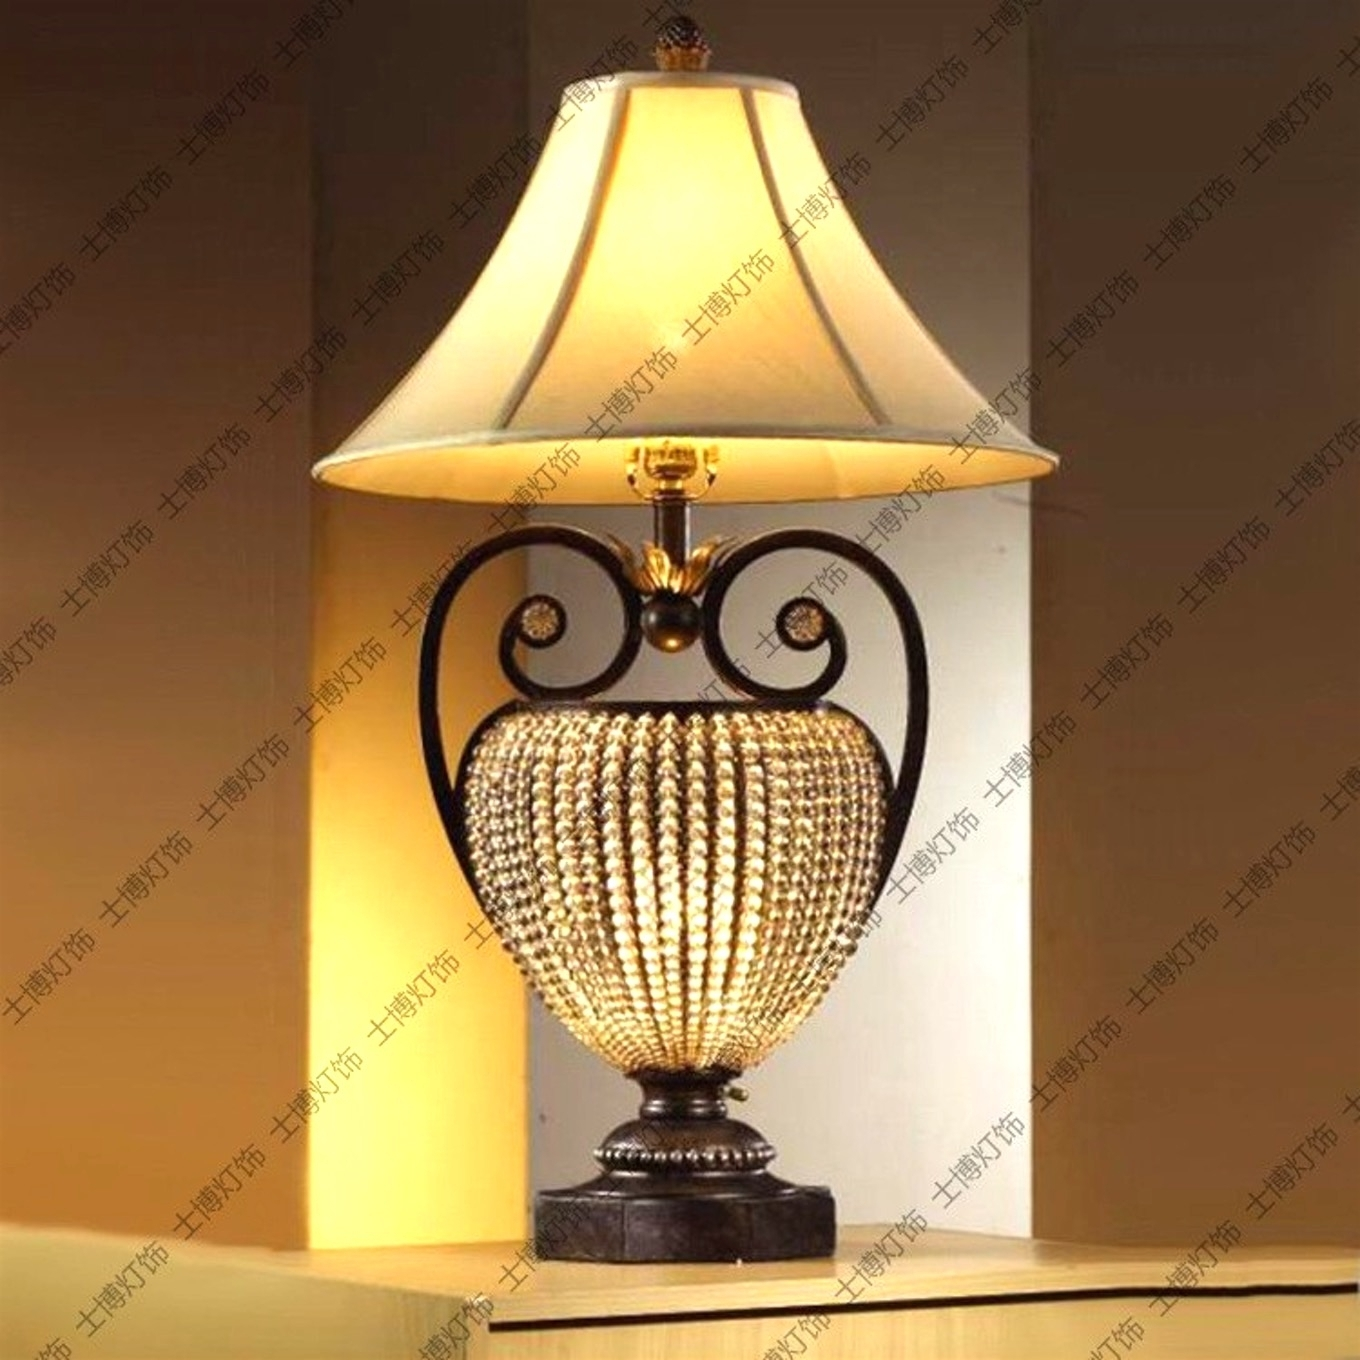 Current Traditional Table Lamps For Living Room Within Bedside Lamps ~ Traditional Table Lamps For Living Room Traditional (View 4 of 20)